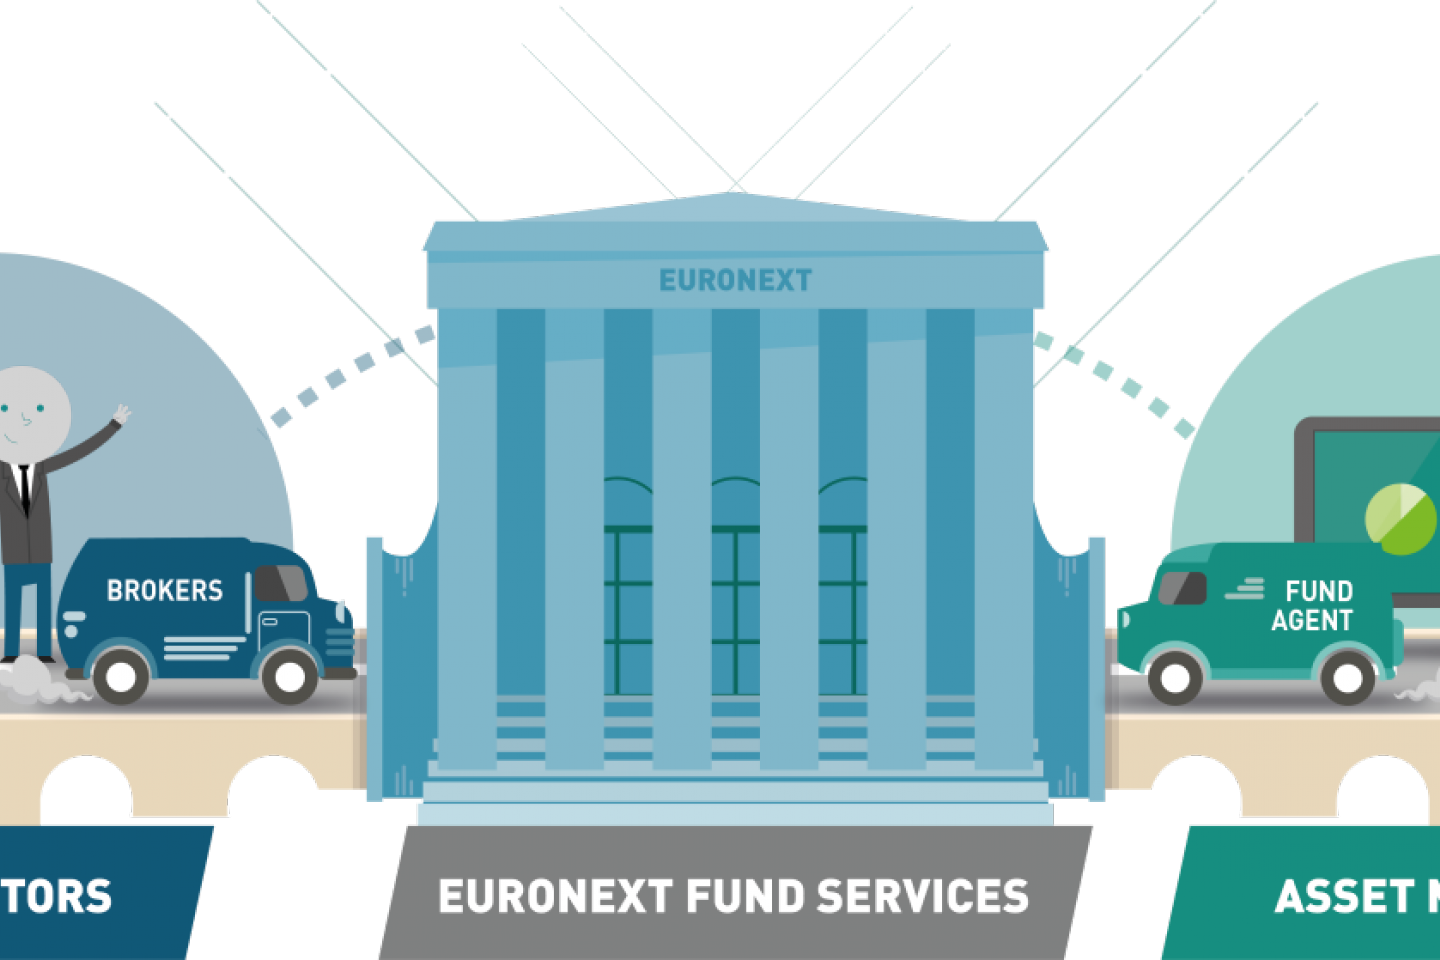 Euronext Fund Services